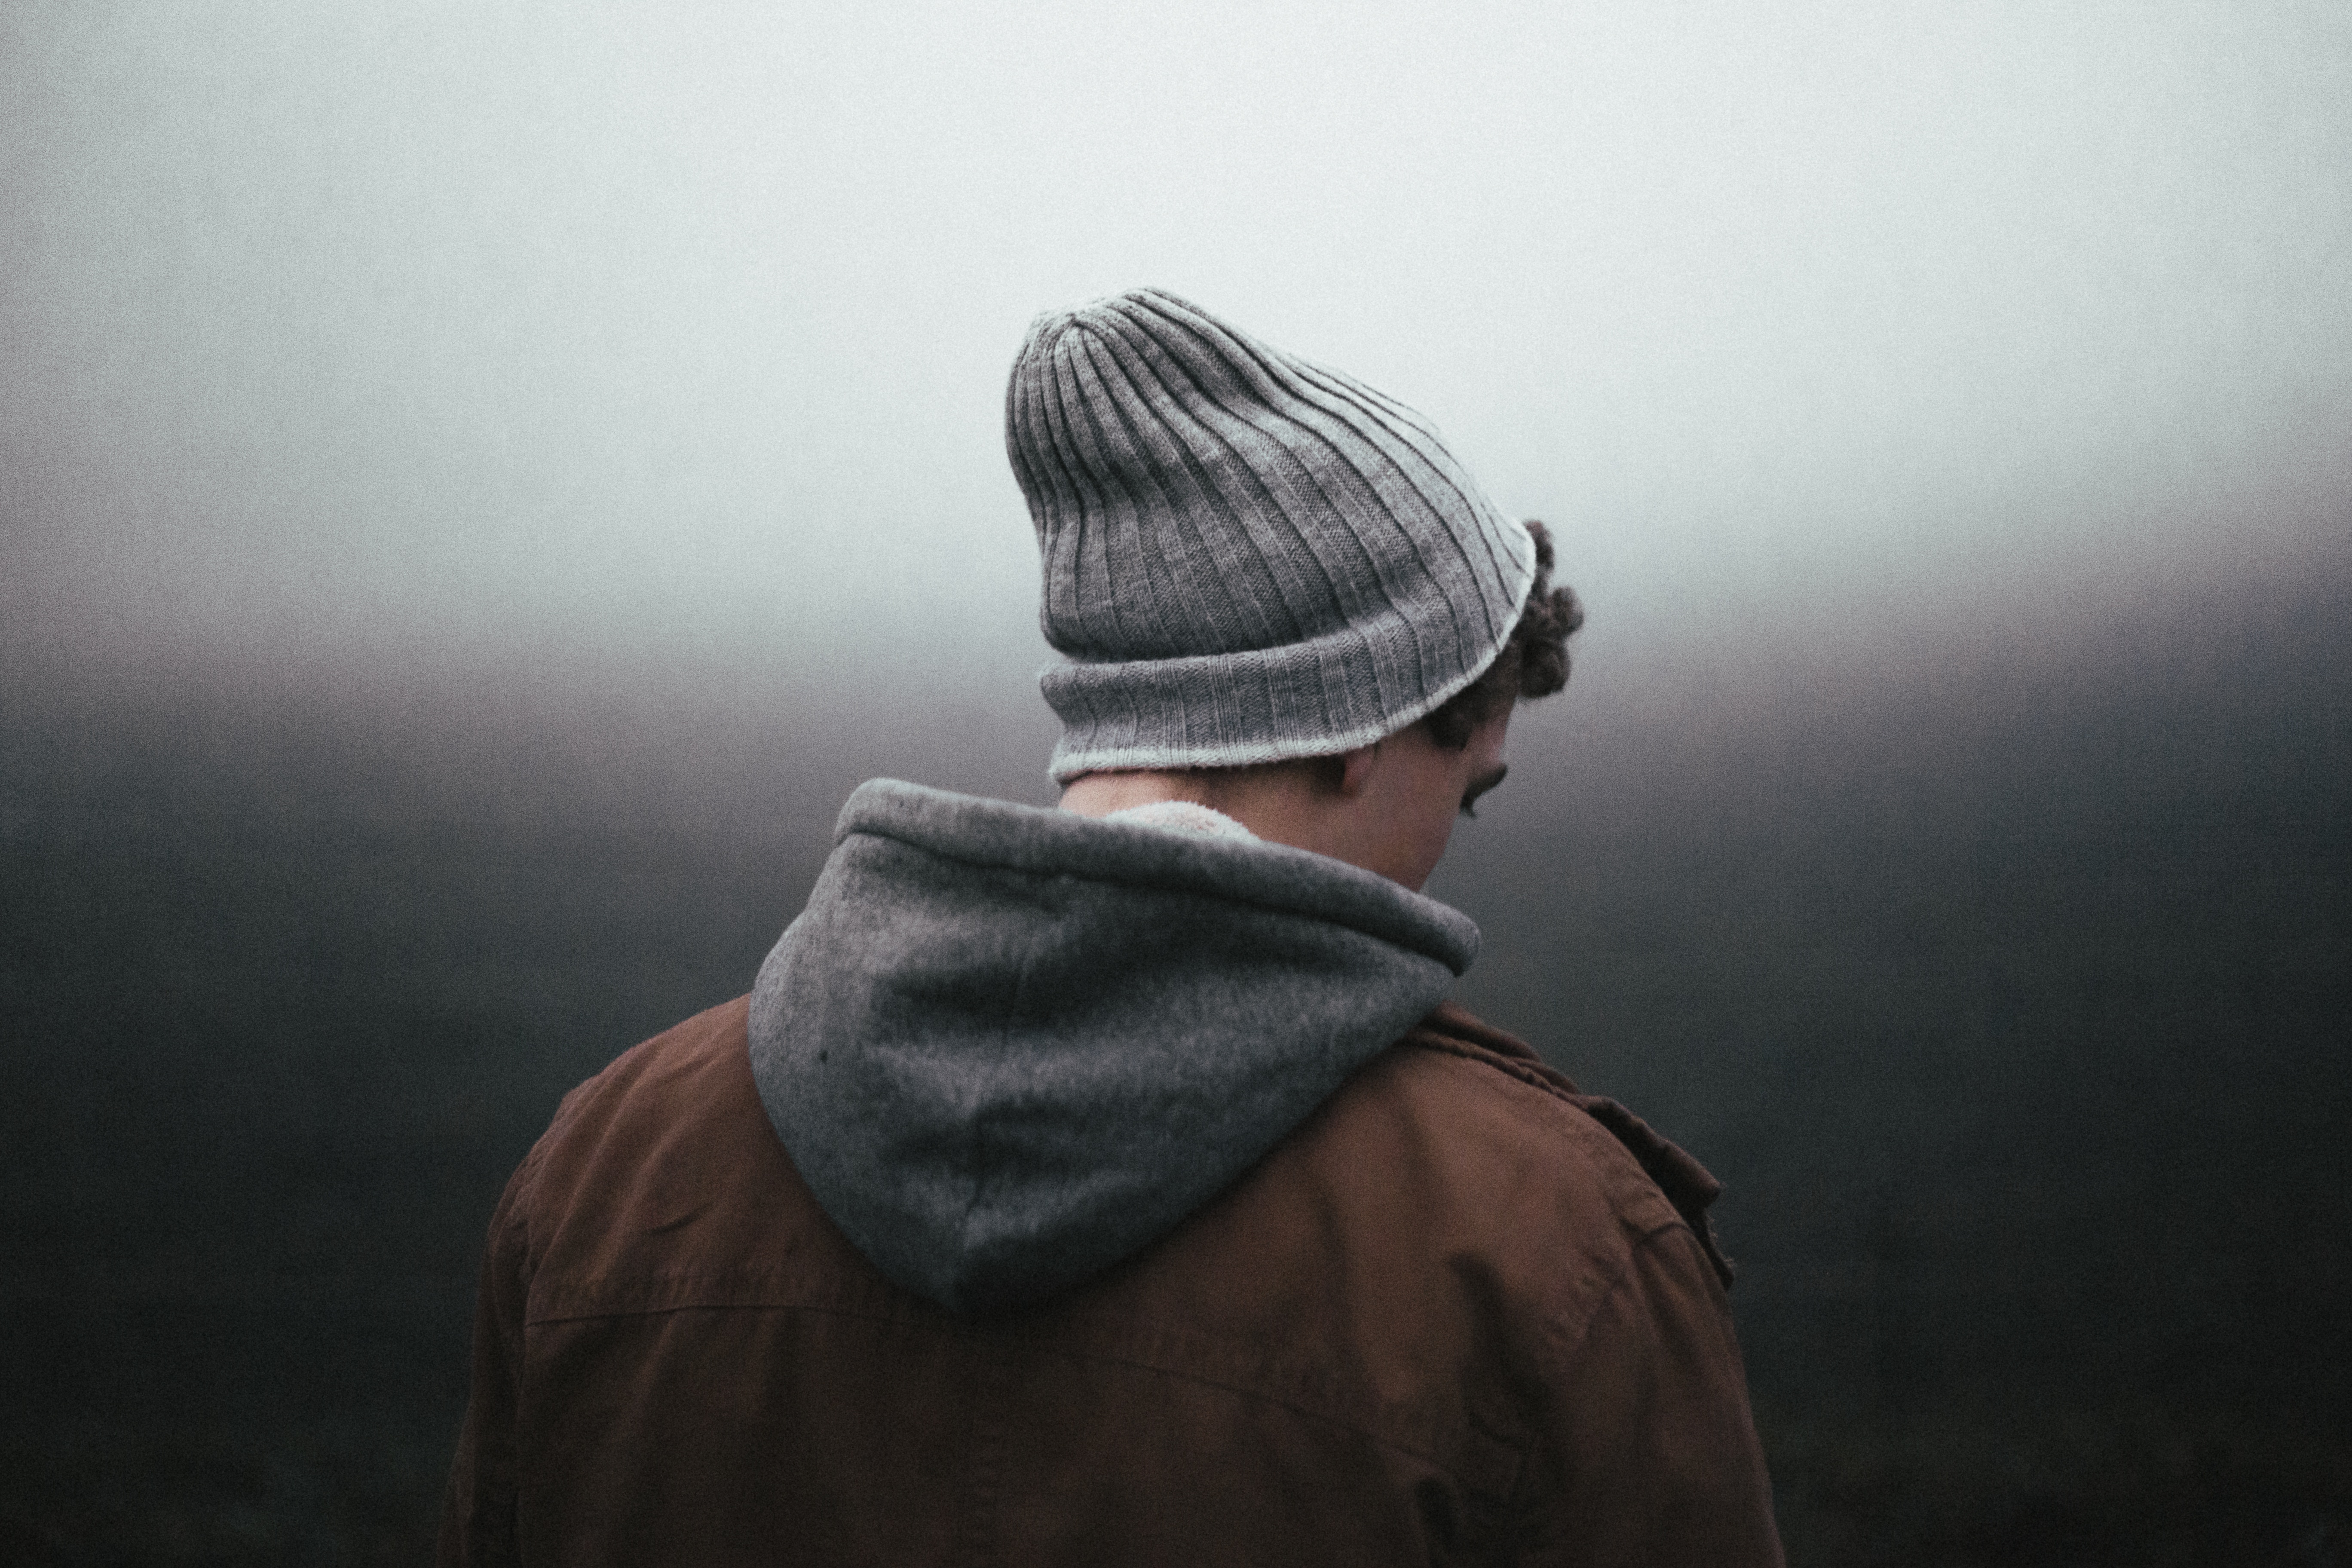 A man wearing a beanie hat and hoody looking away from the camera